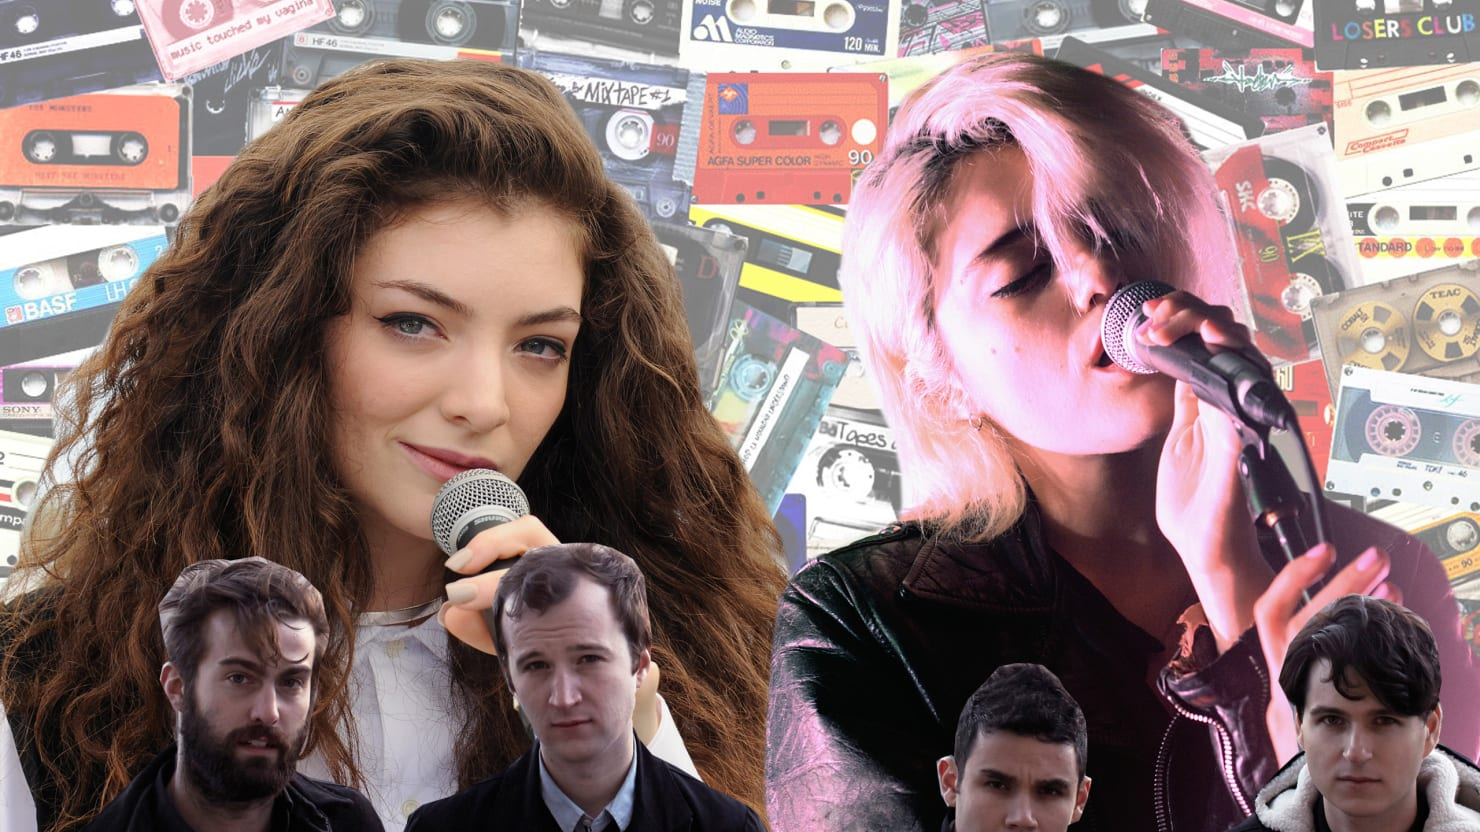 The 13 Best Songs of 2013: Lorde, Kanye West, Beyoncé, and More